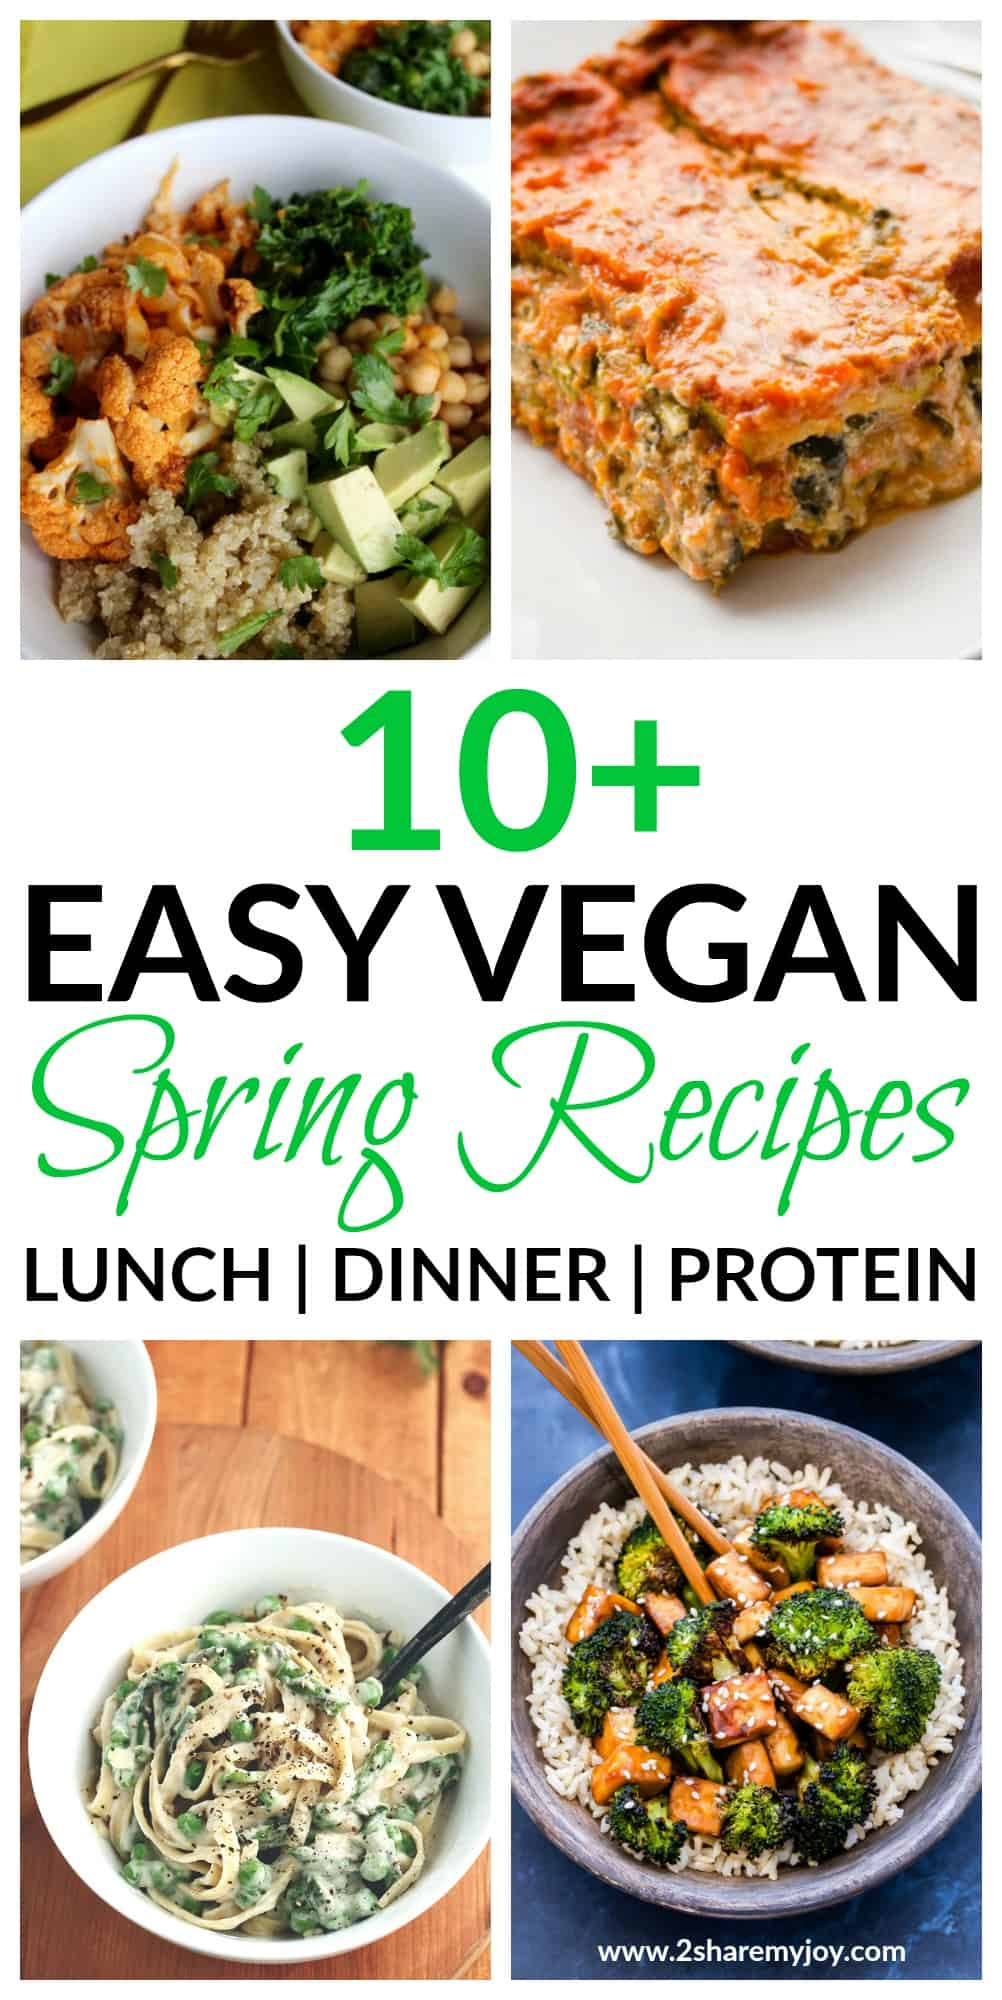 Easy Vegan Spring Recipes For A Whole Food Plant Based Diet High Protein Dinner